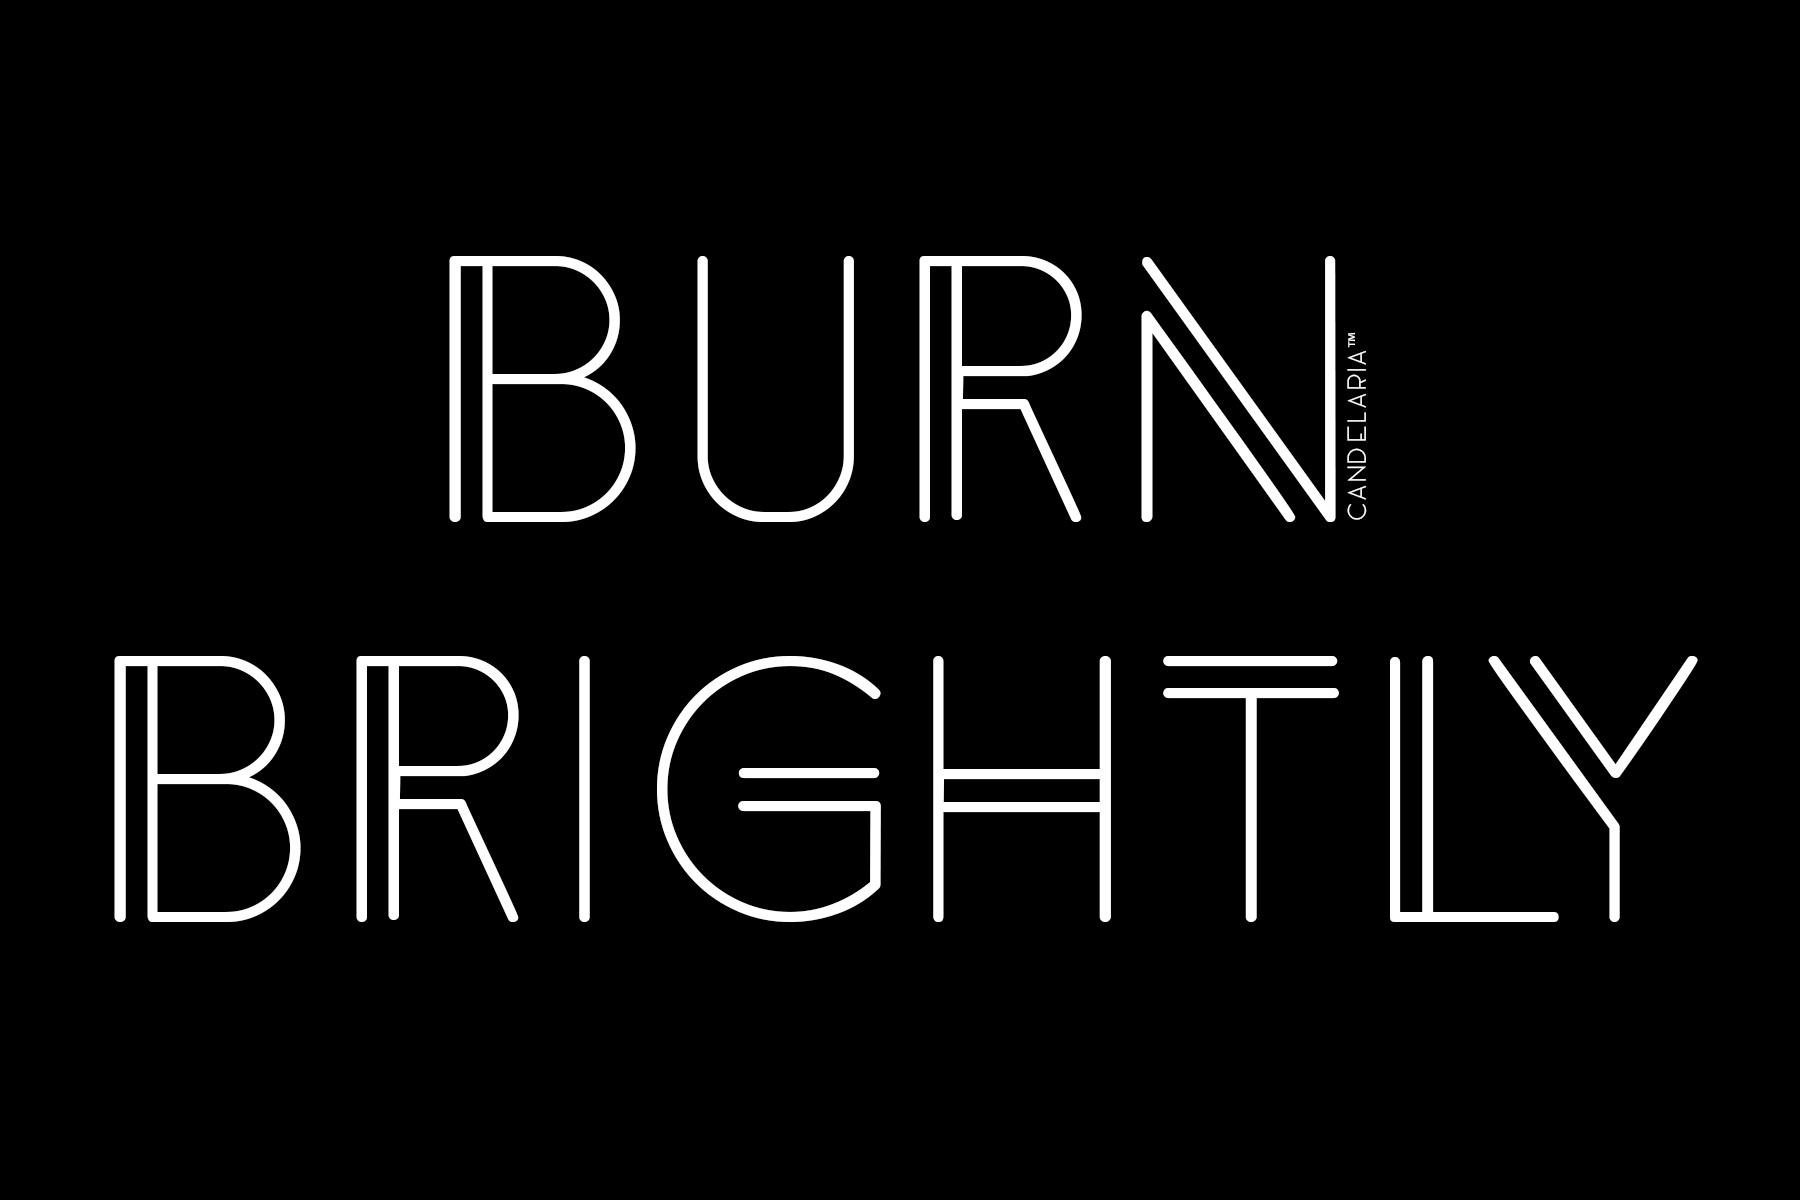 burnbrightly.jpg